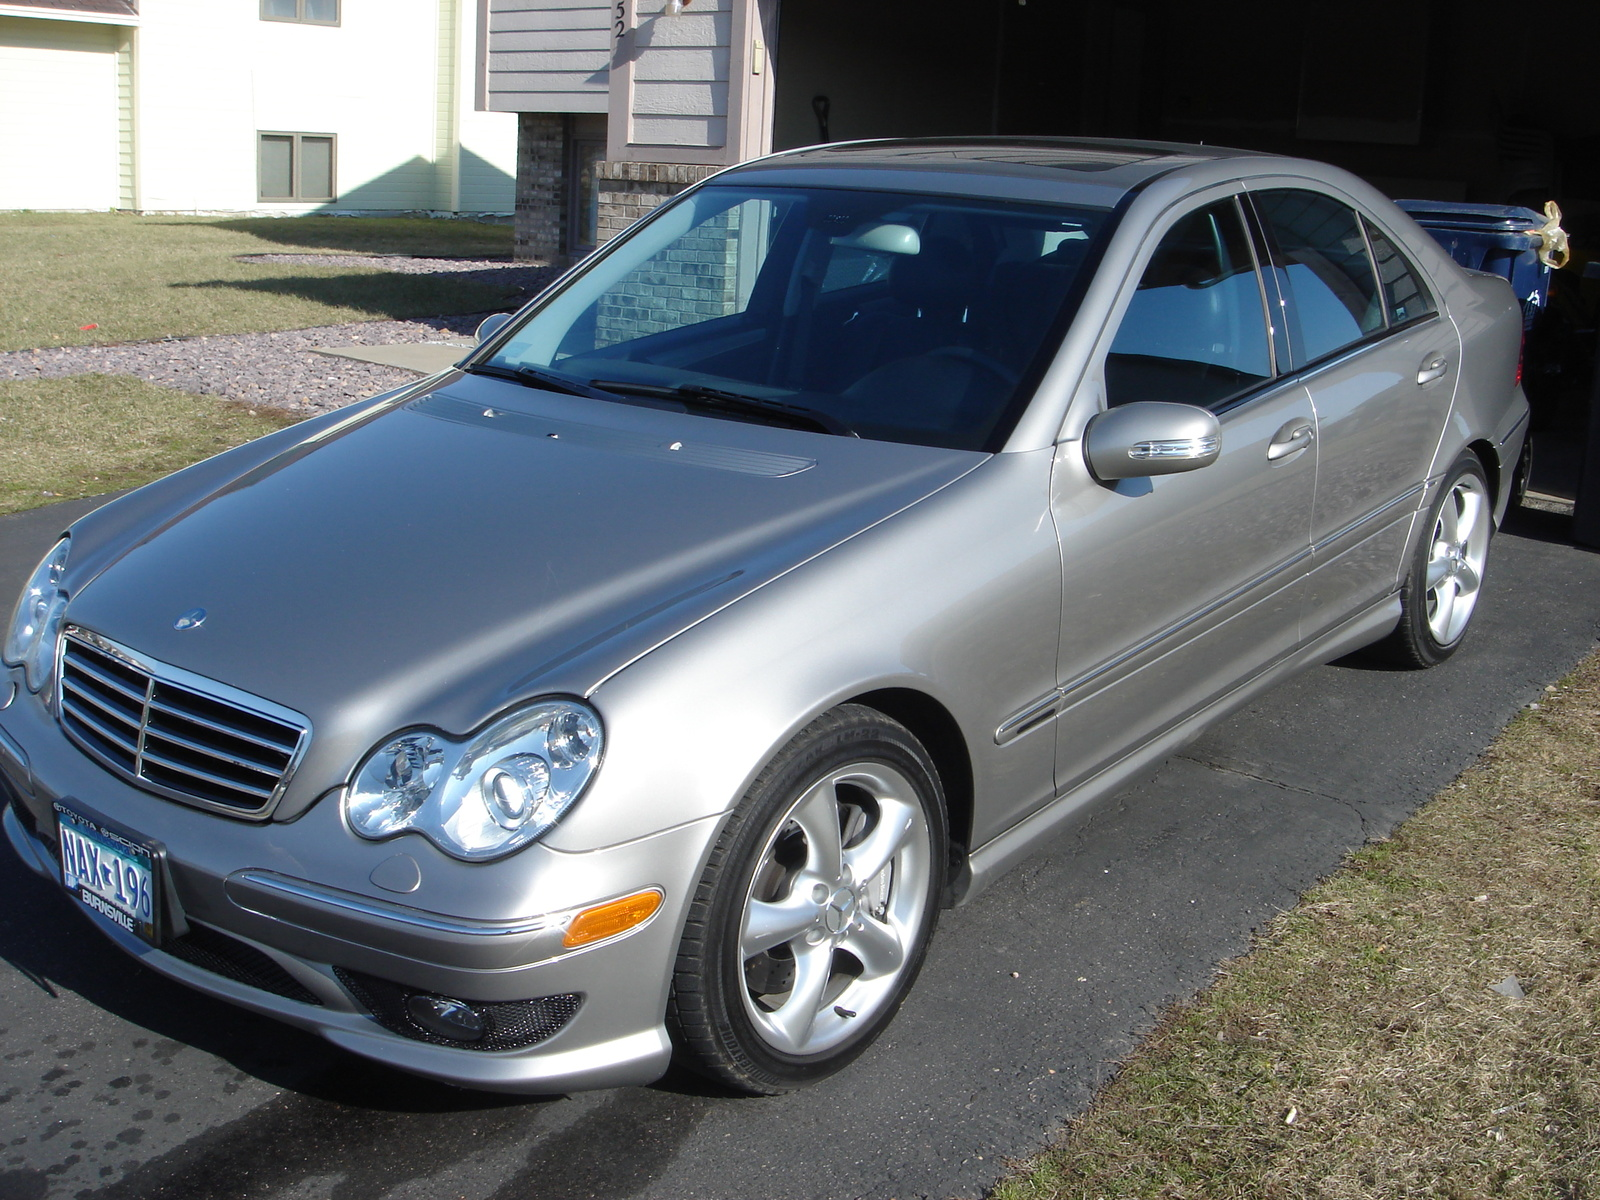 2005 mercedes benz c class pictures cargurus for Mercedes benz coupe 2005